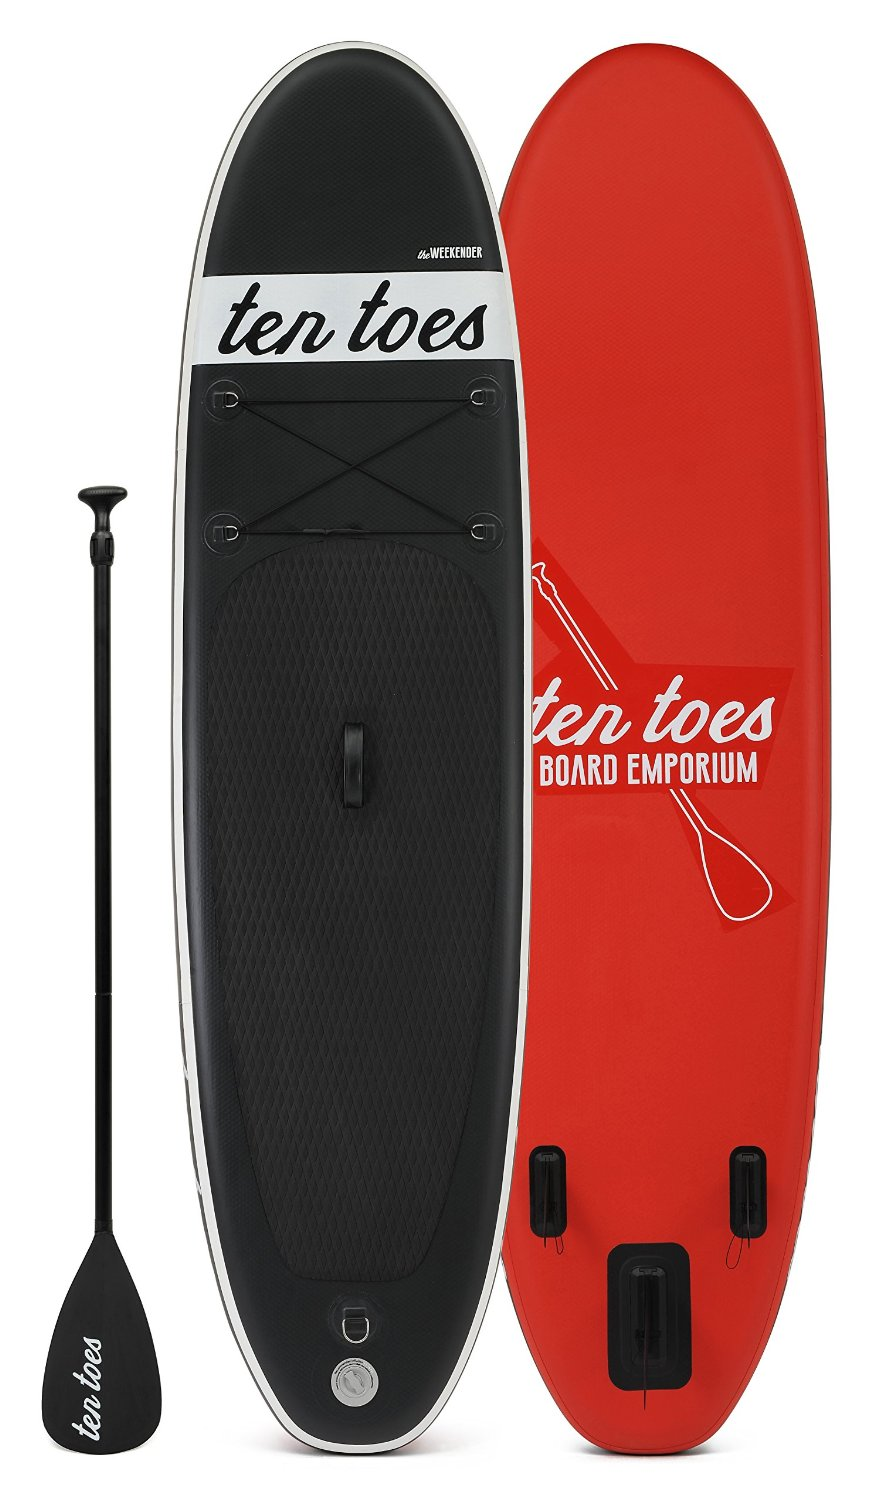 Ten Toes iSUP Stand Up Paddle Board